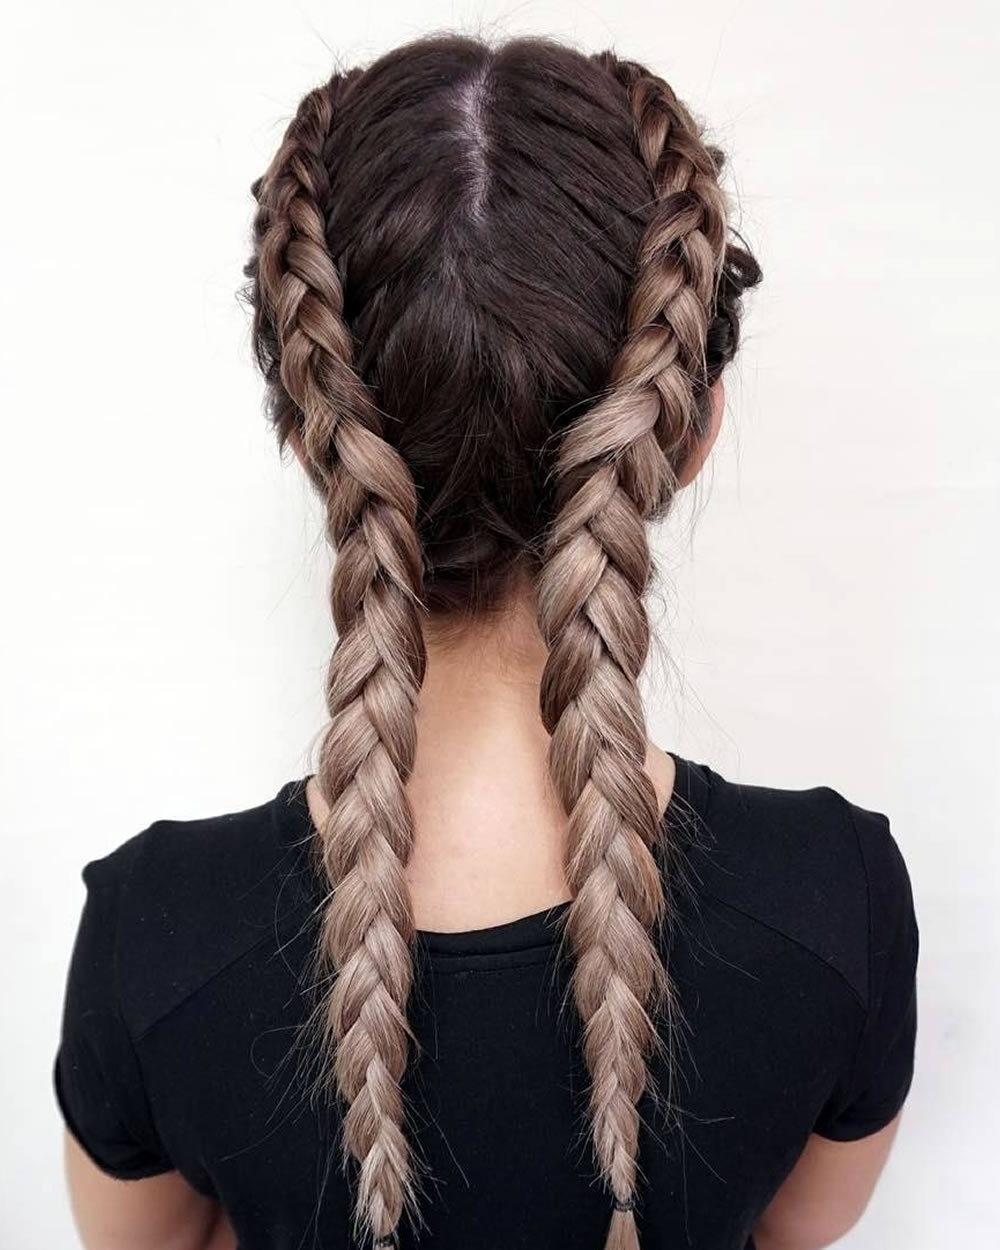 Widely Used Blonde Ponytails With Double Braid In French Braids 2018 (Mermaid, Half Up, Side, Fishtail Etc (View 17 of 20)